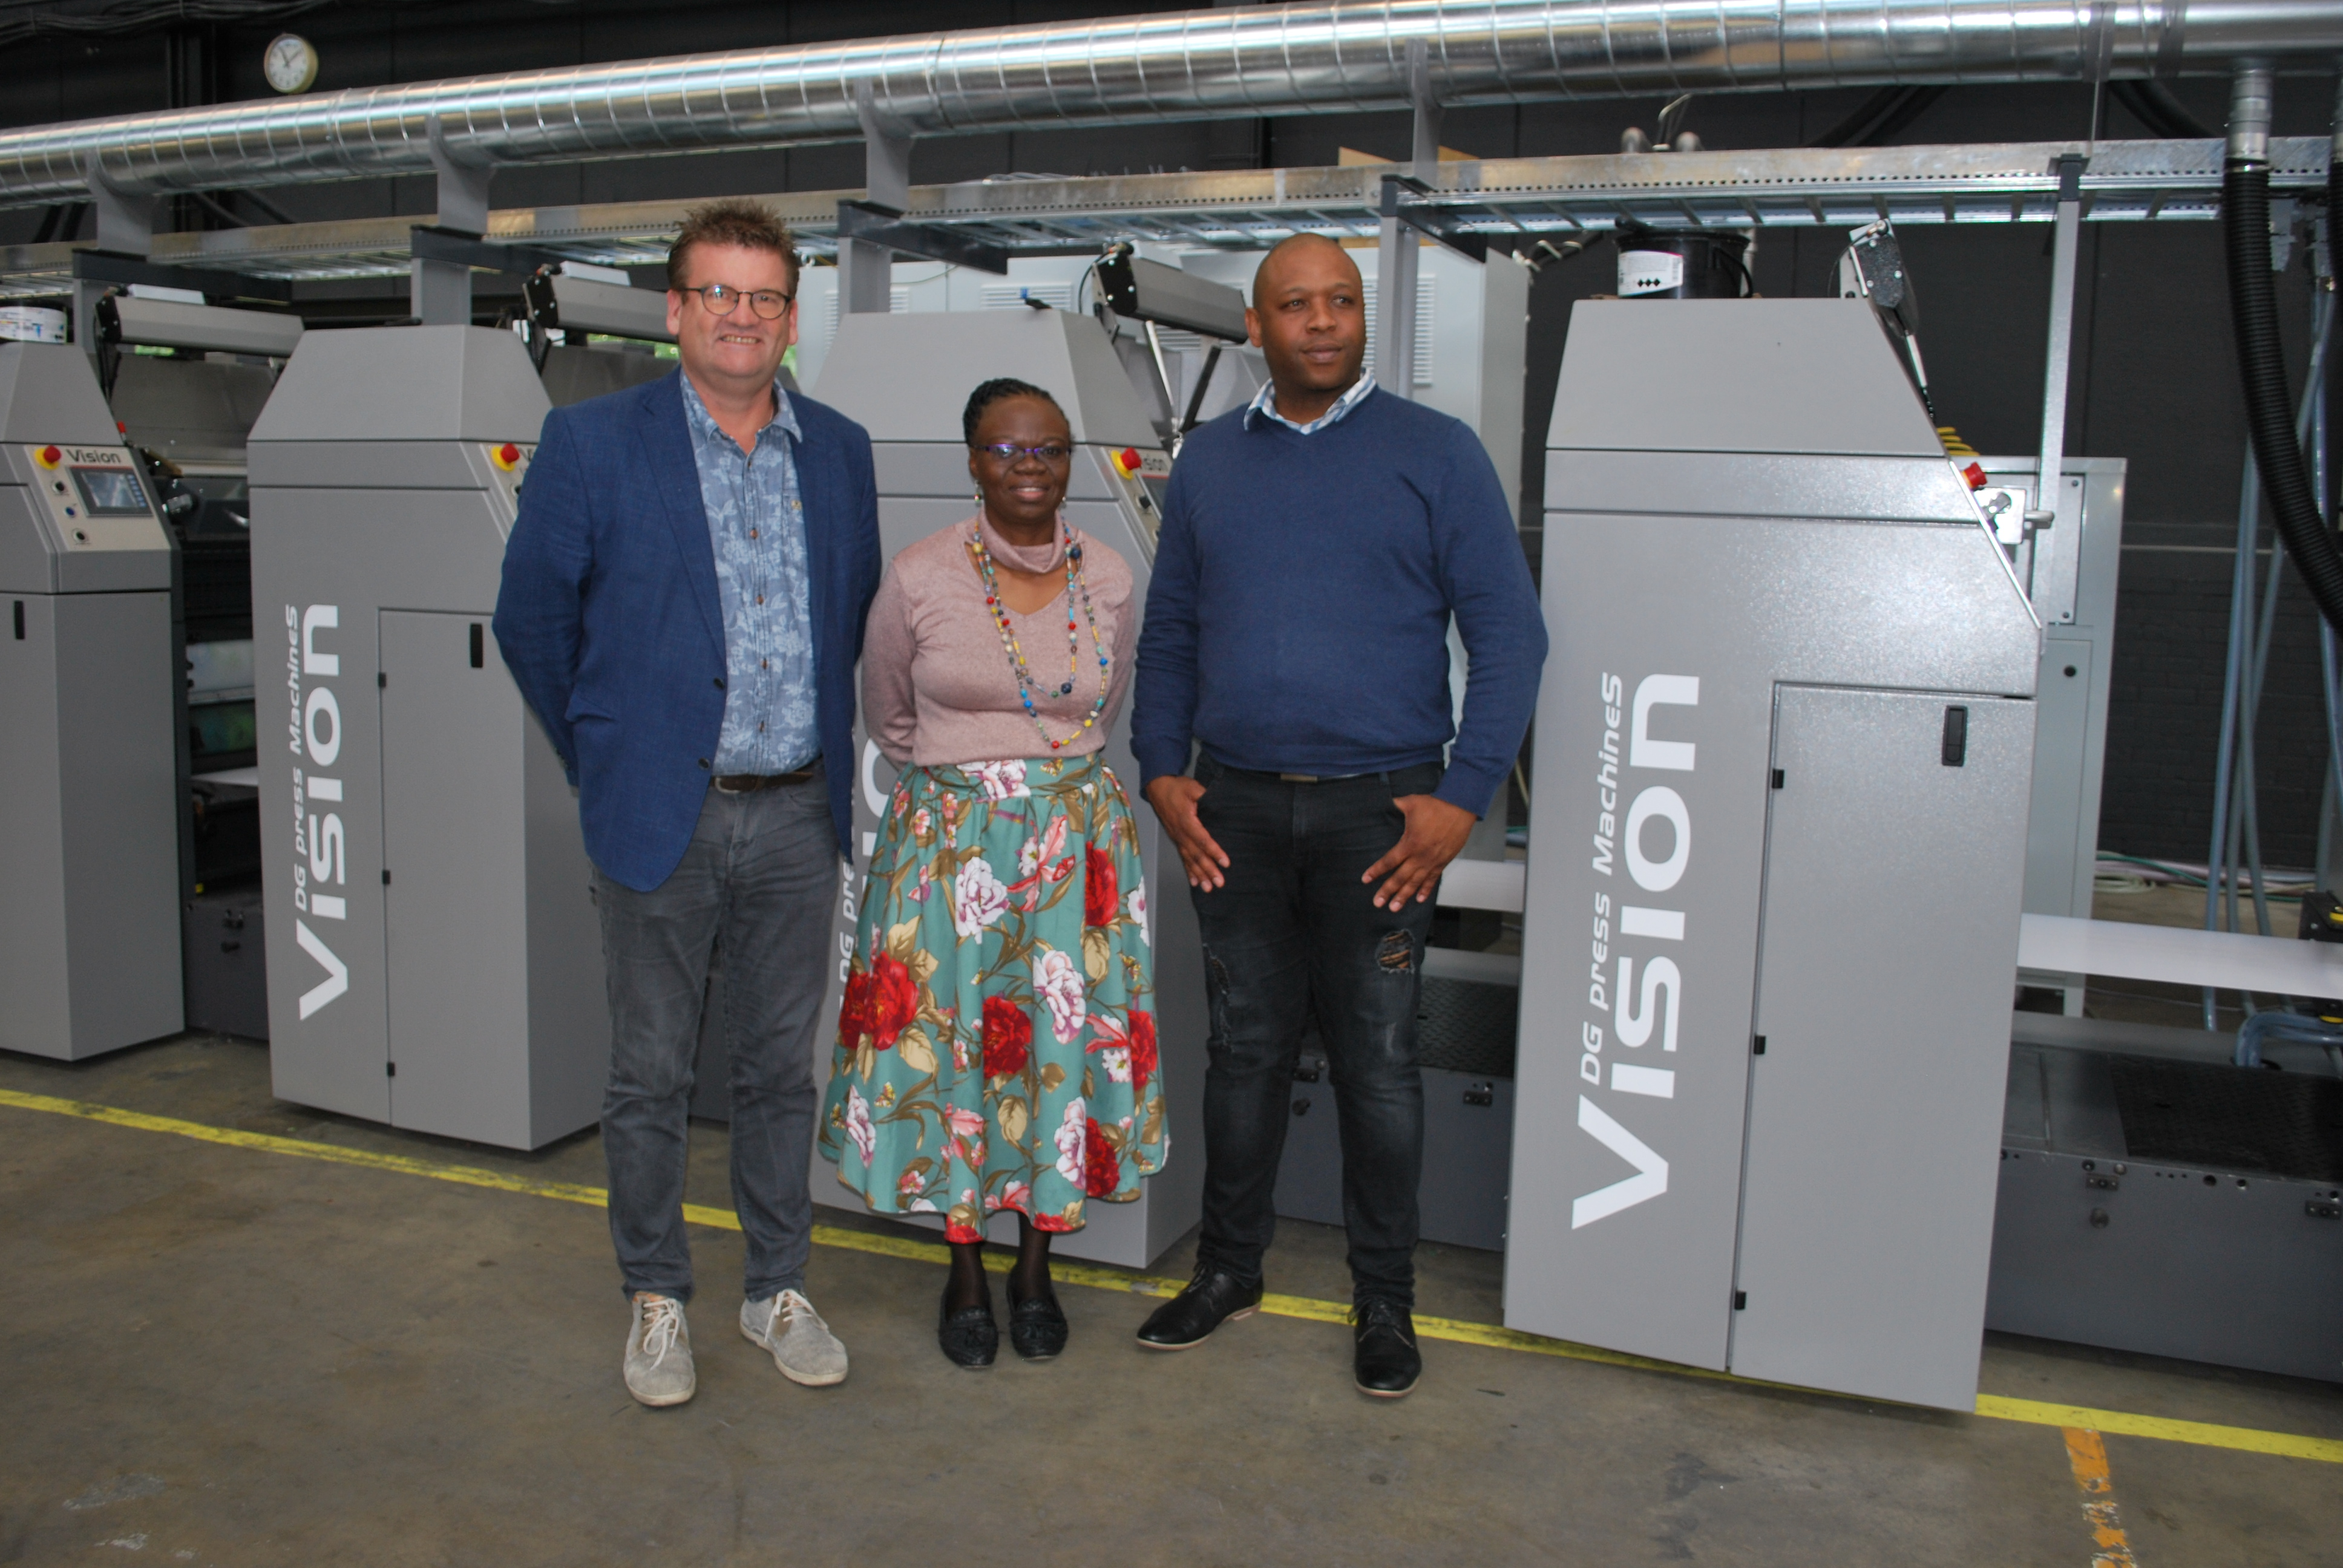 Vision offset printing machine for GPW security print